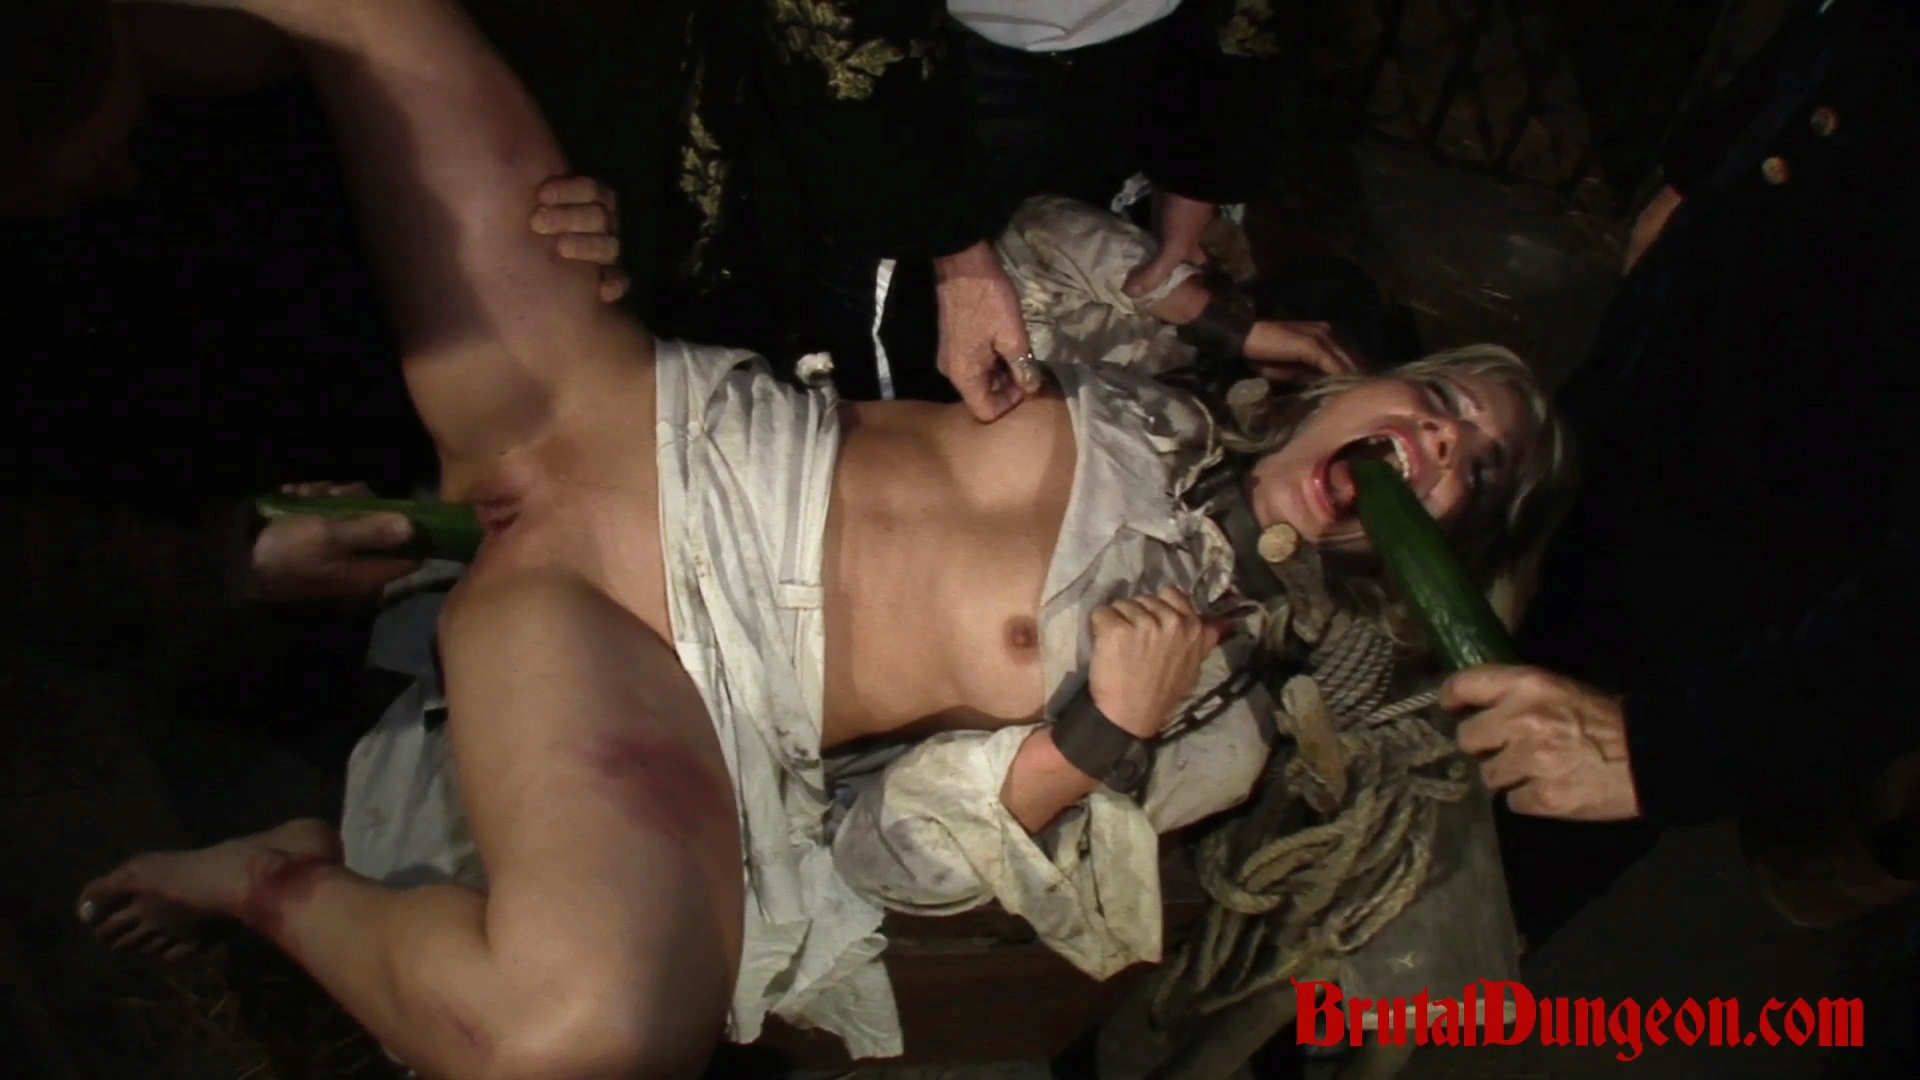 Blonde amalia imprisoned for bdsm gangbang. In our dungeon, a young blonde is left without any food. For some crumbs of bread she would do anything, even withstand any kind of mistreatment to satisfy her Masters. She must endure imprisonment, bondage, domination, BDSM fun, gang bang, food play, food sex, double penetration, blowjobs, spanking, fingering, tit, nipple and cunt torment.